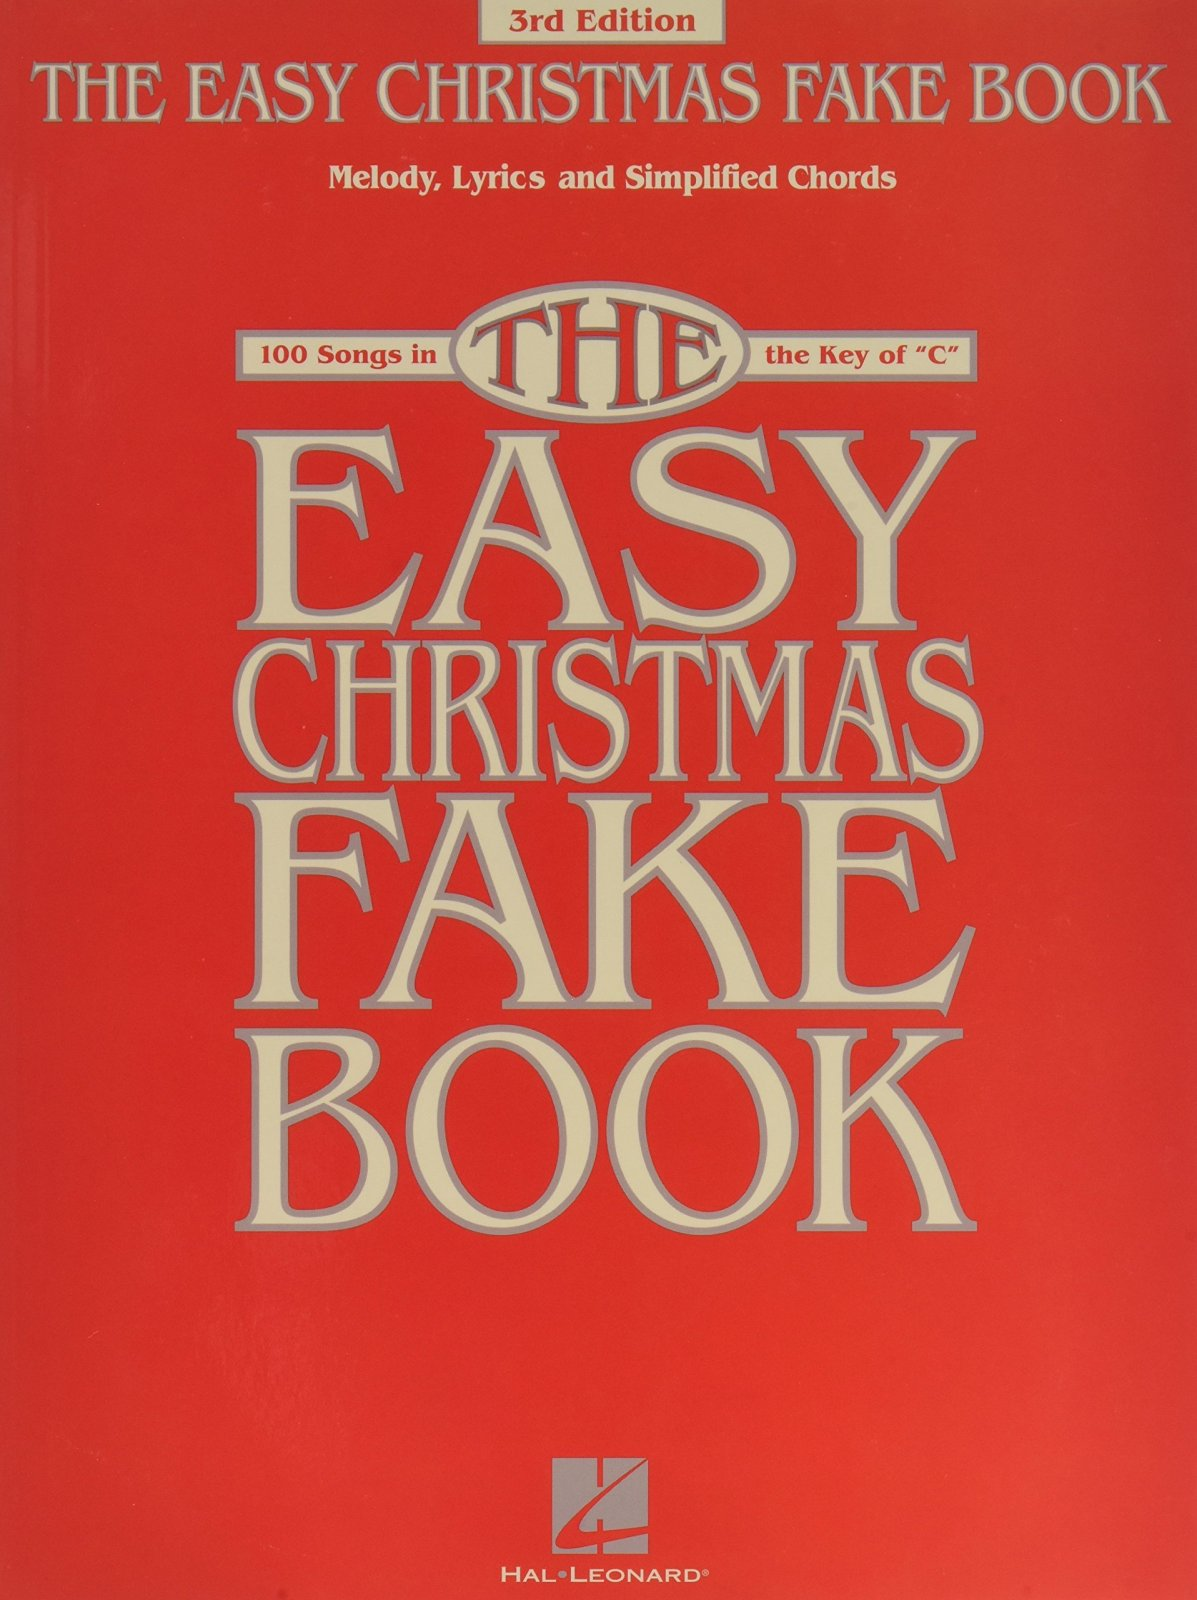 The Easy Christmas Fake Book  3rd Edition